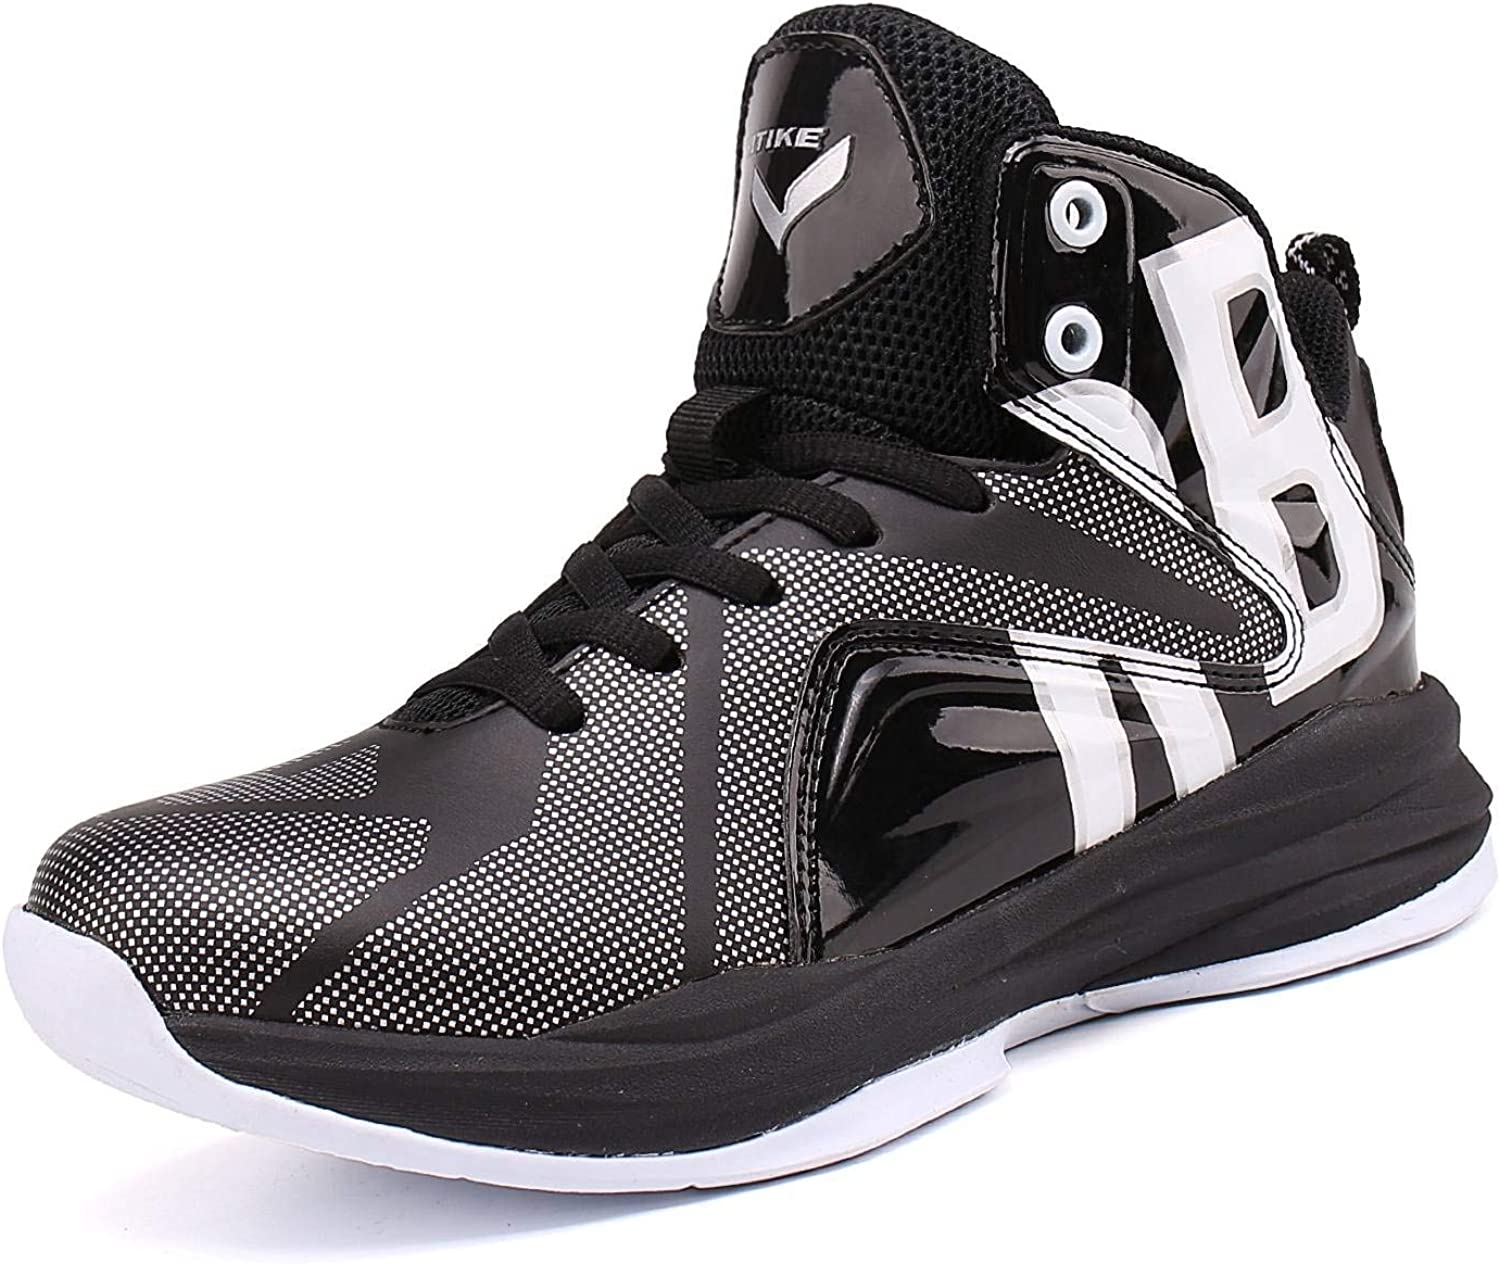 JMFCHI Kids Basketball Shoes High-top Sports Shoes Sneakers Durable Lace-up Non-Slip Running Shoes Secure for Little Kids Big Kids and Boys Girls